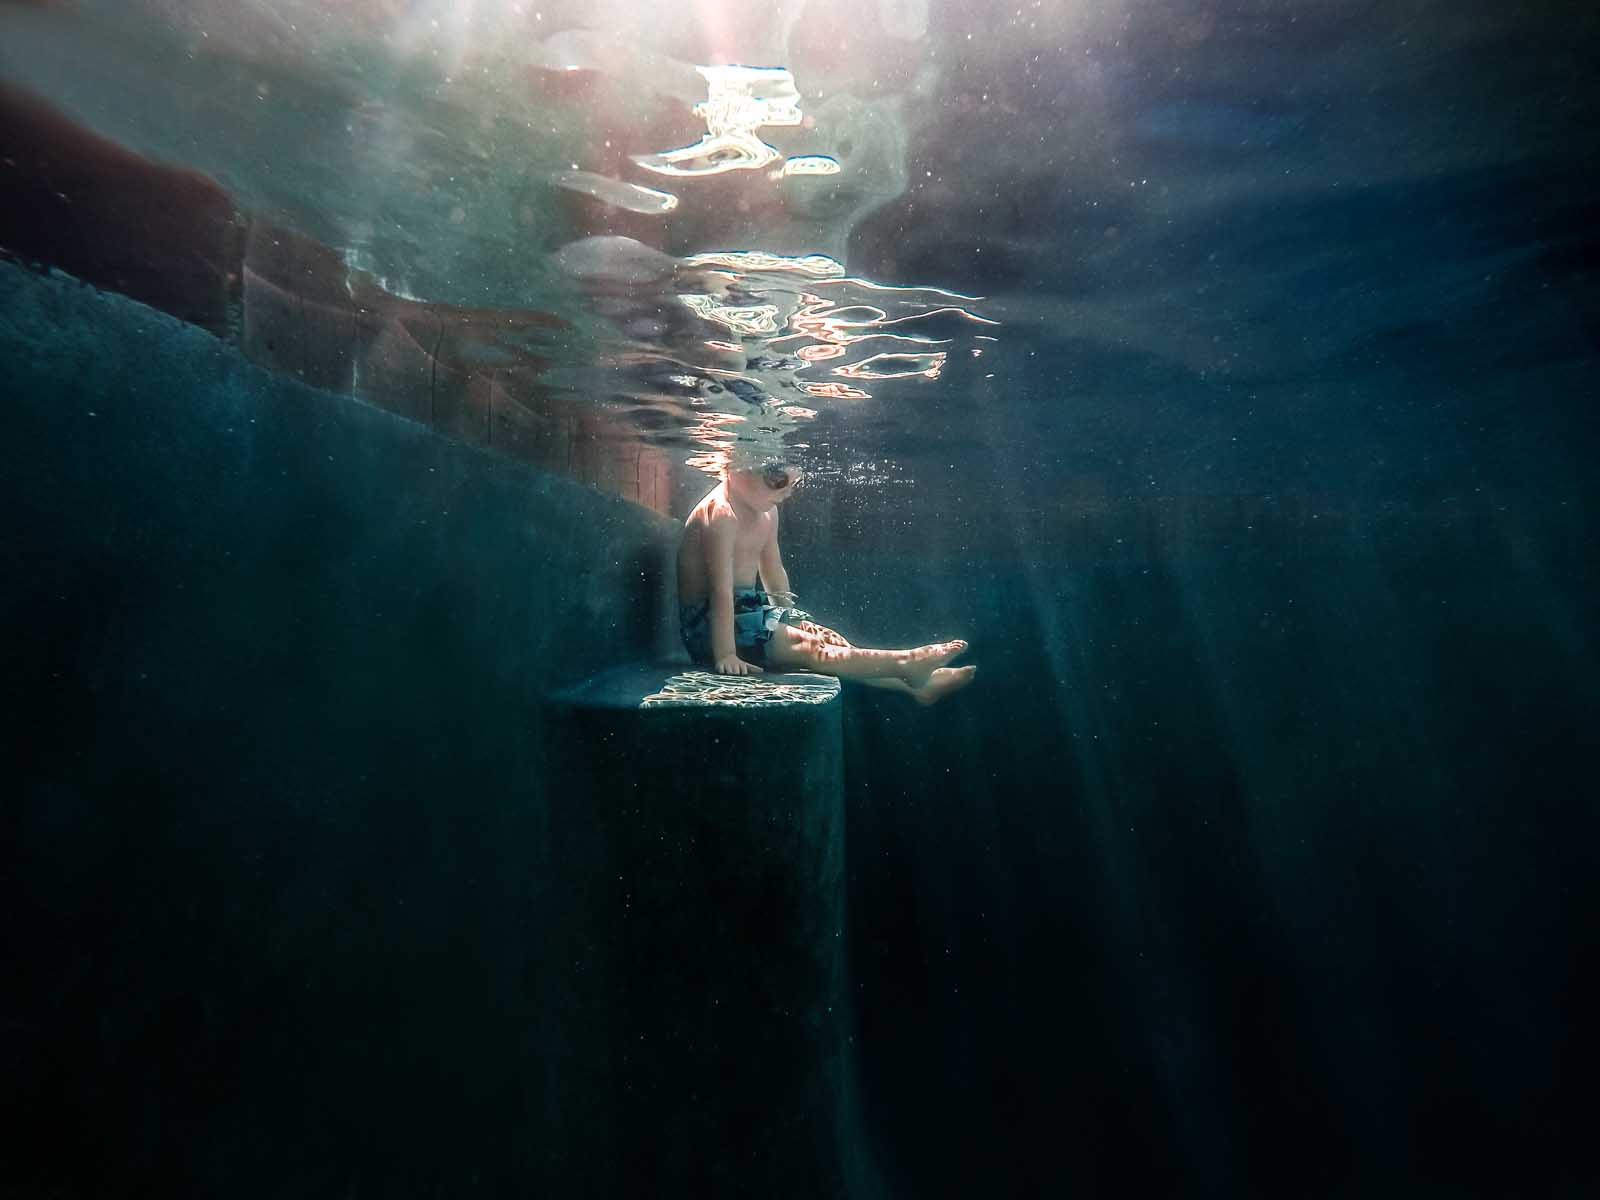 underwater photography edit of boy sitting in pool